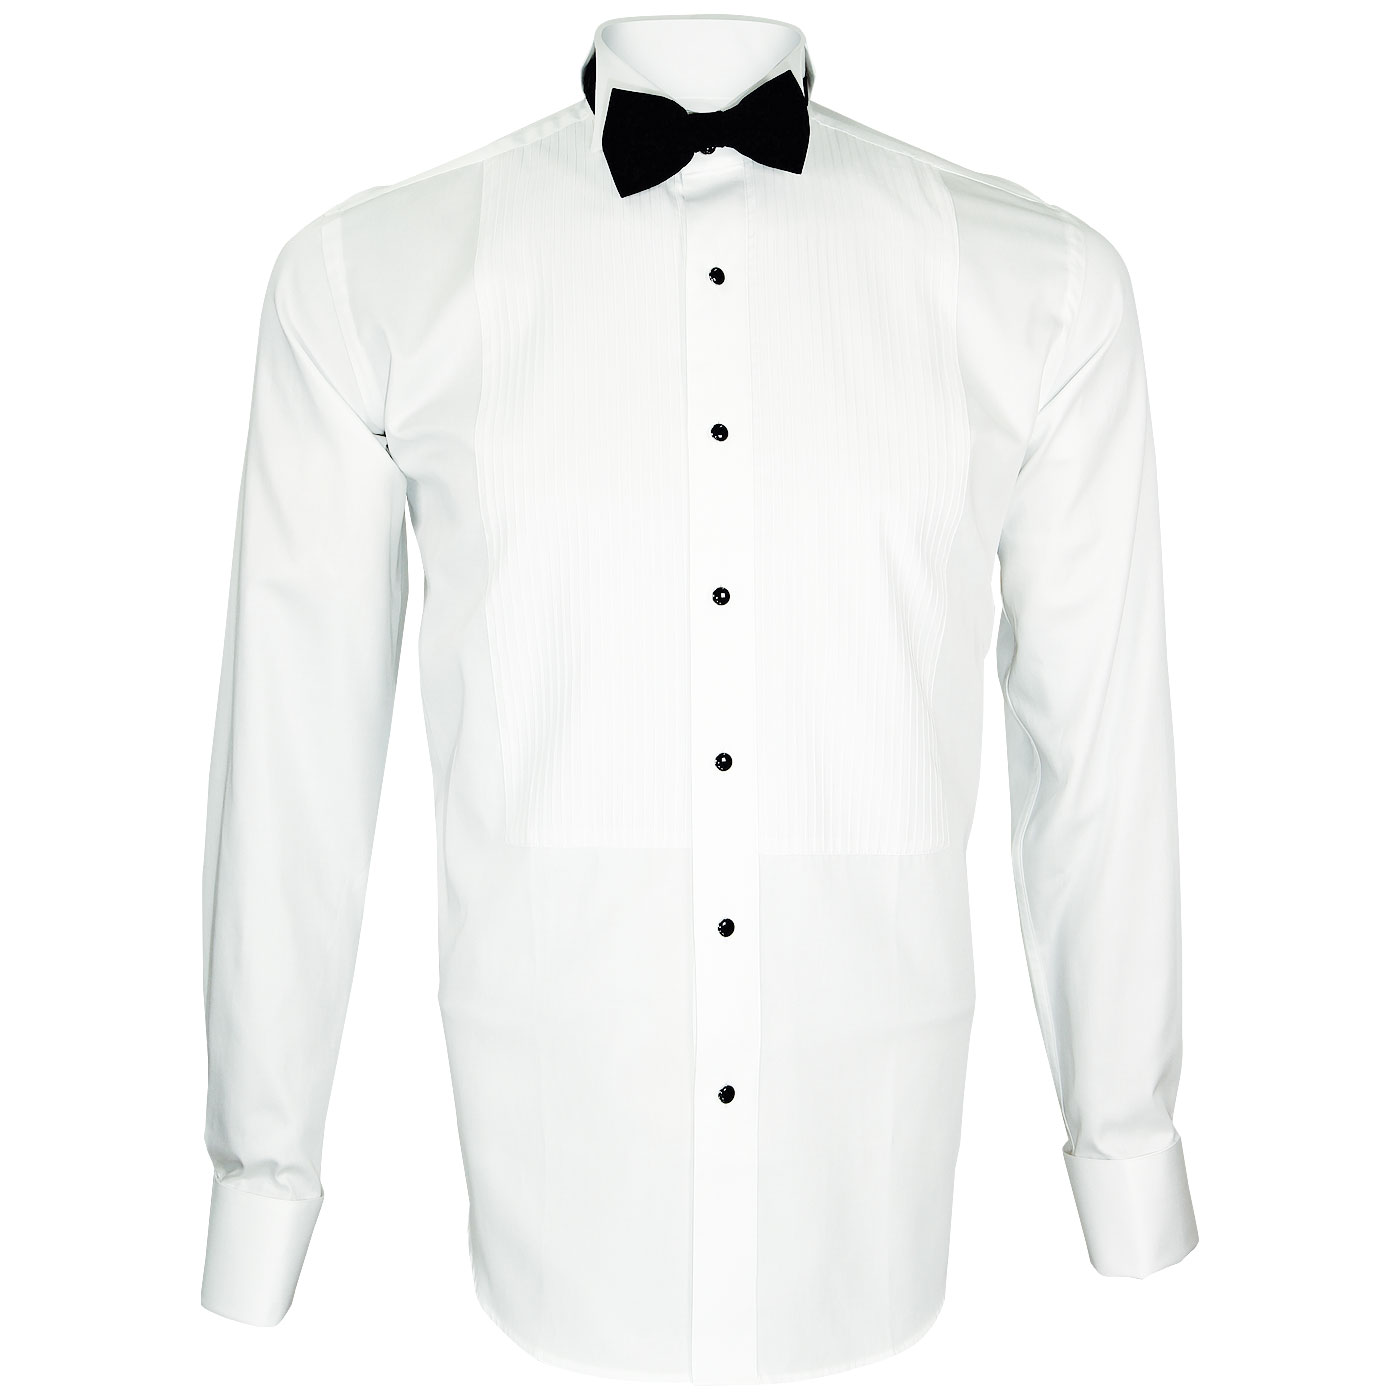 Man's shirt Ceremony: Dressed for Wedding or Events